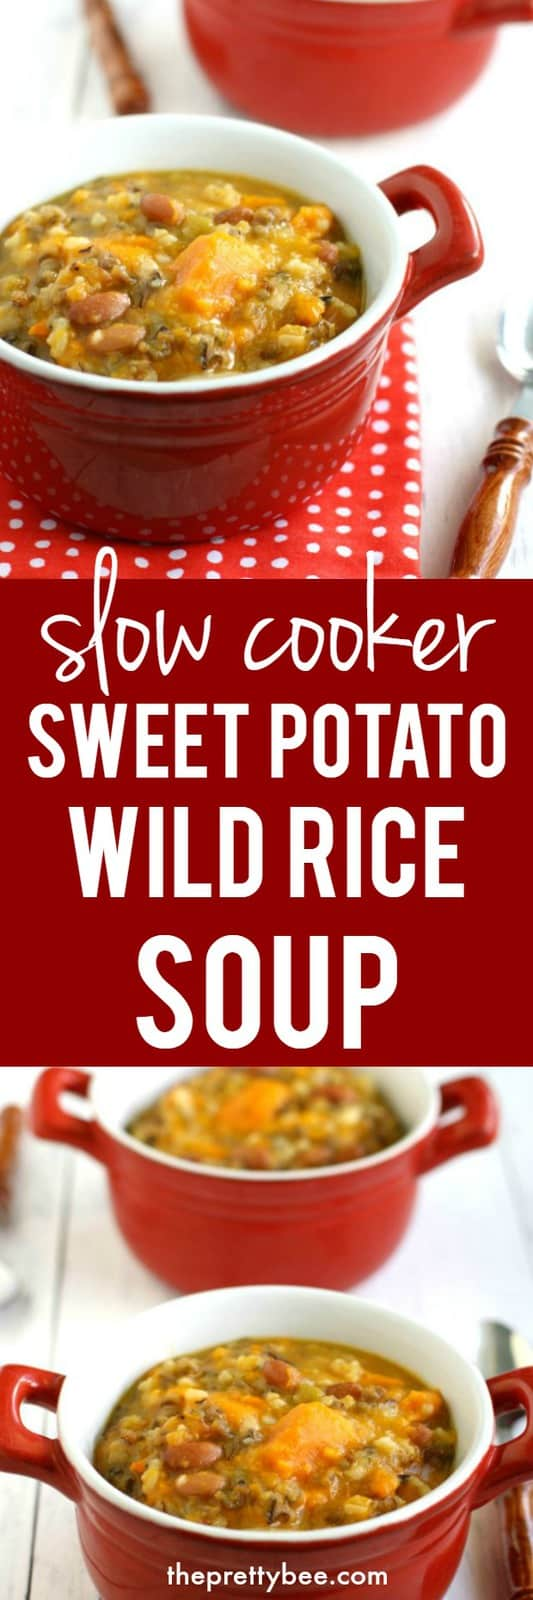 easy slow cooker sweet potato wild rice soup